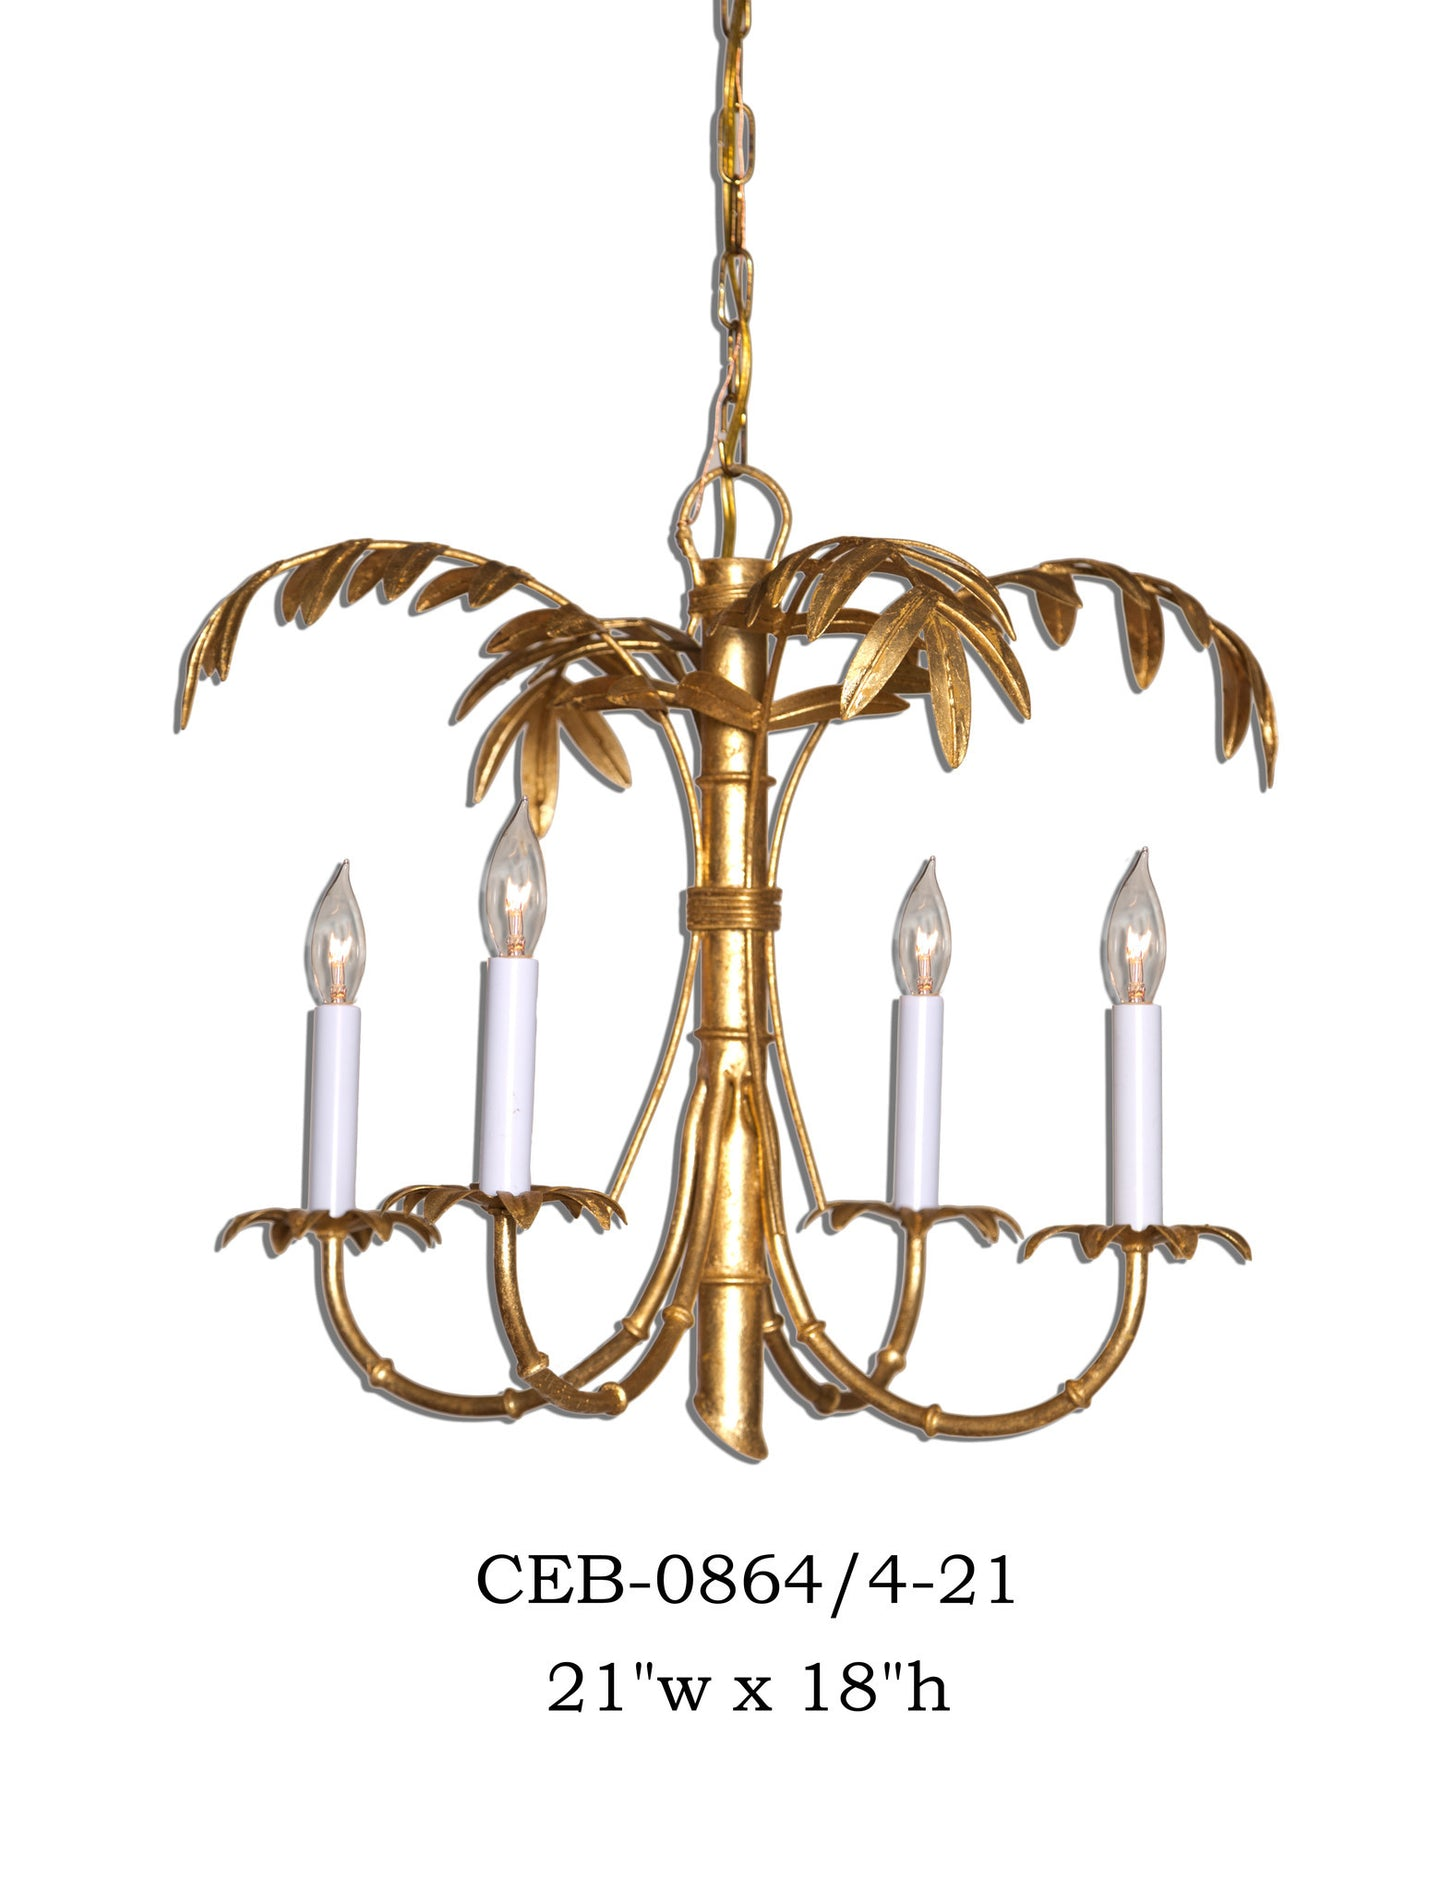 Other Metal Chandelier - CEB-0864/4-21Chandelier - Graham's Lighting Memphis, TN